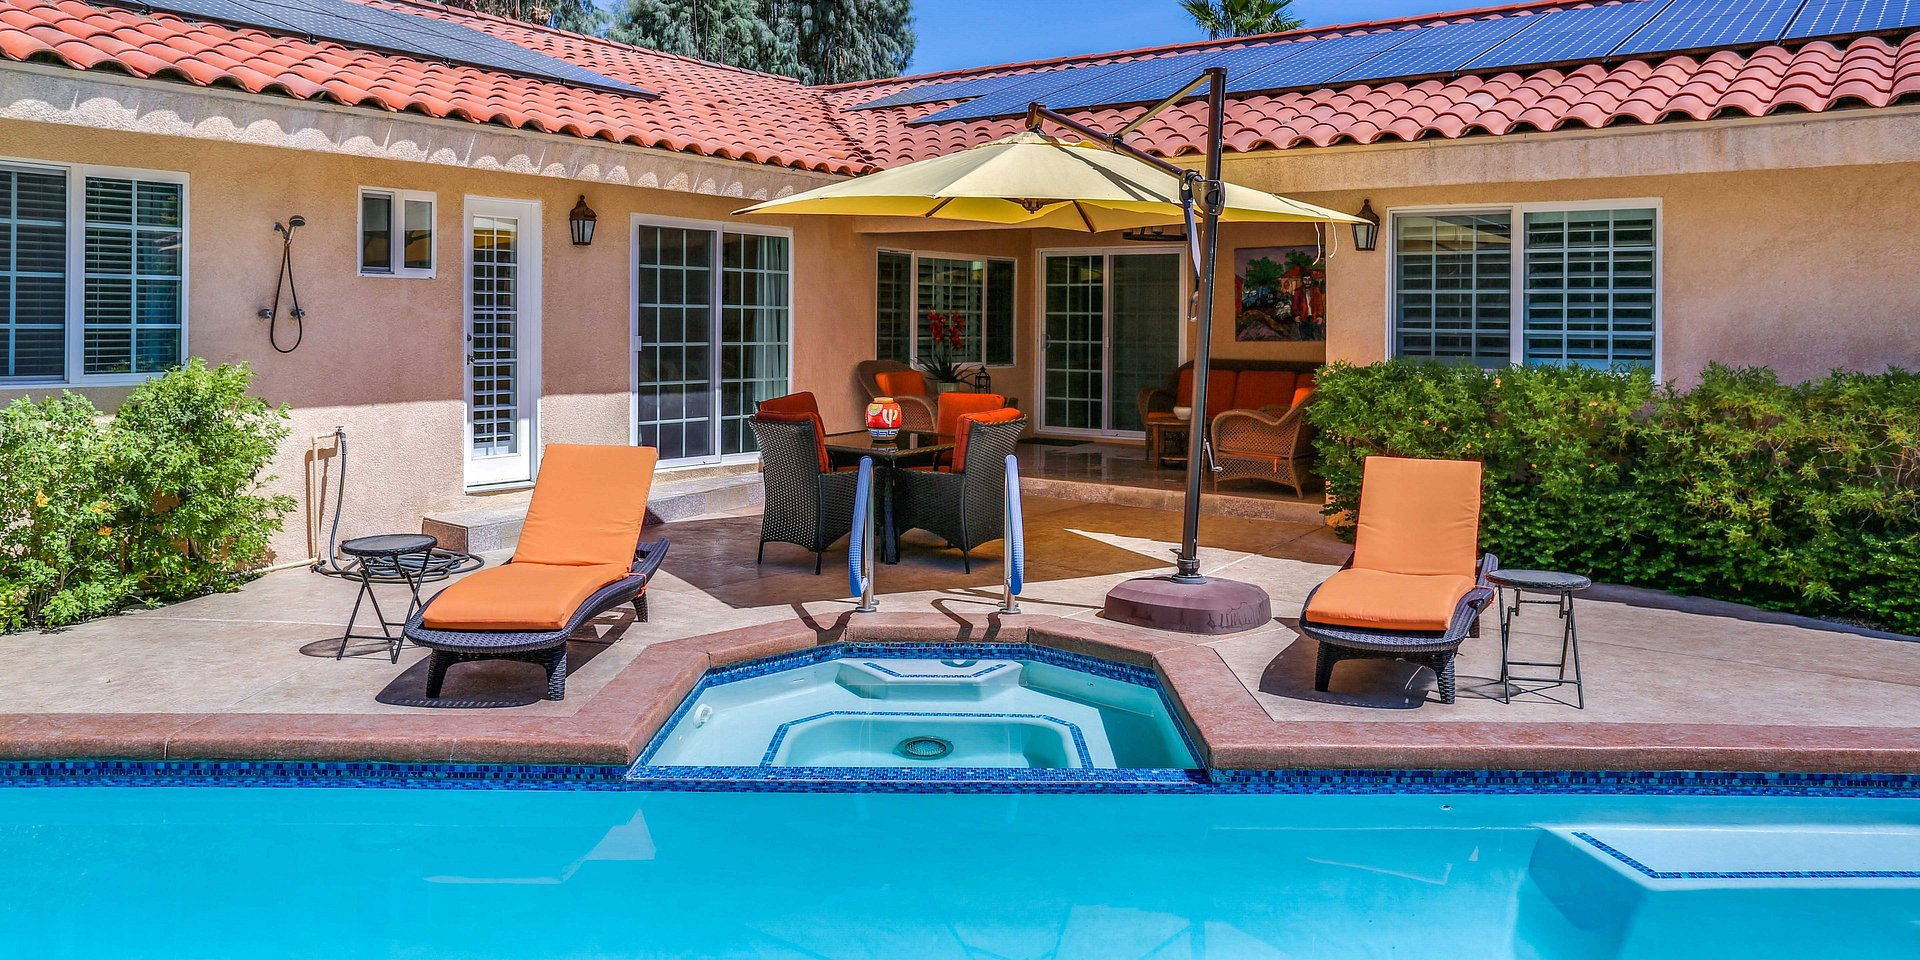 Coldwell Banker Residential Brokerage Lists a Palm Springs Property for $1.69 Million